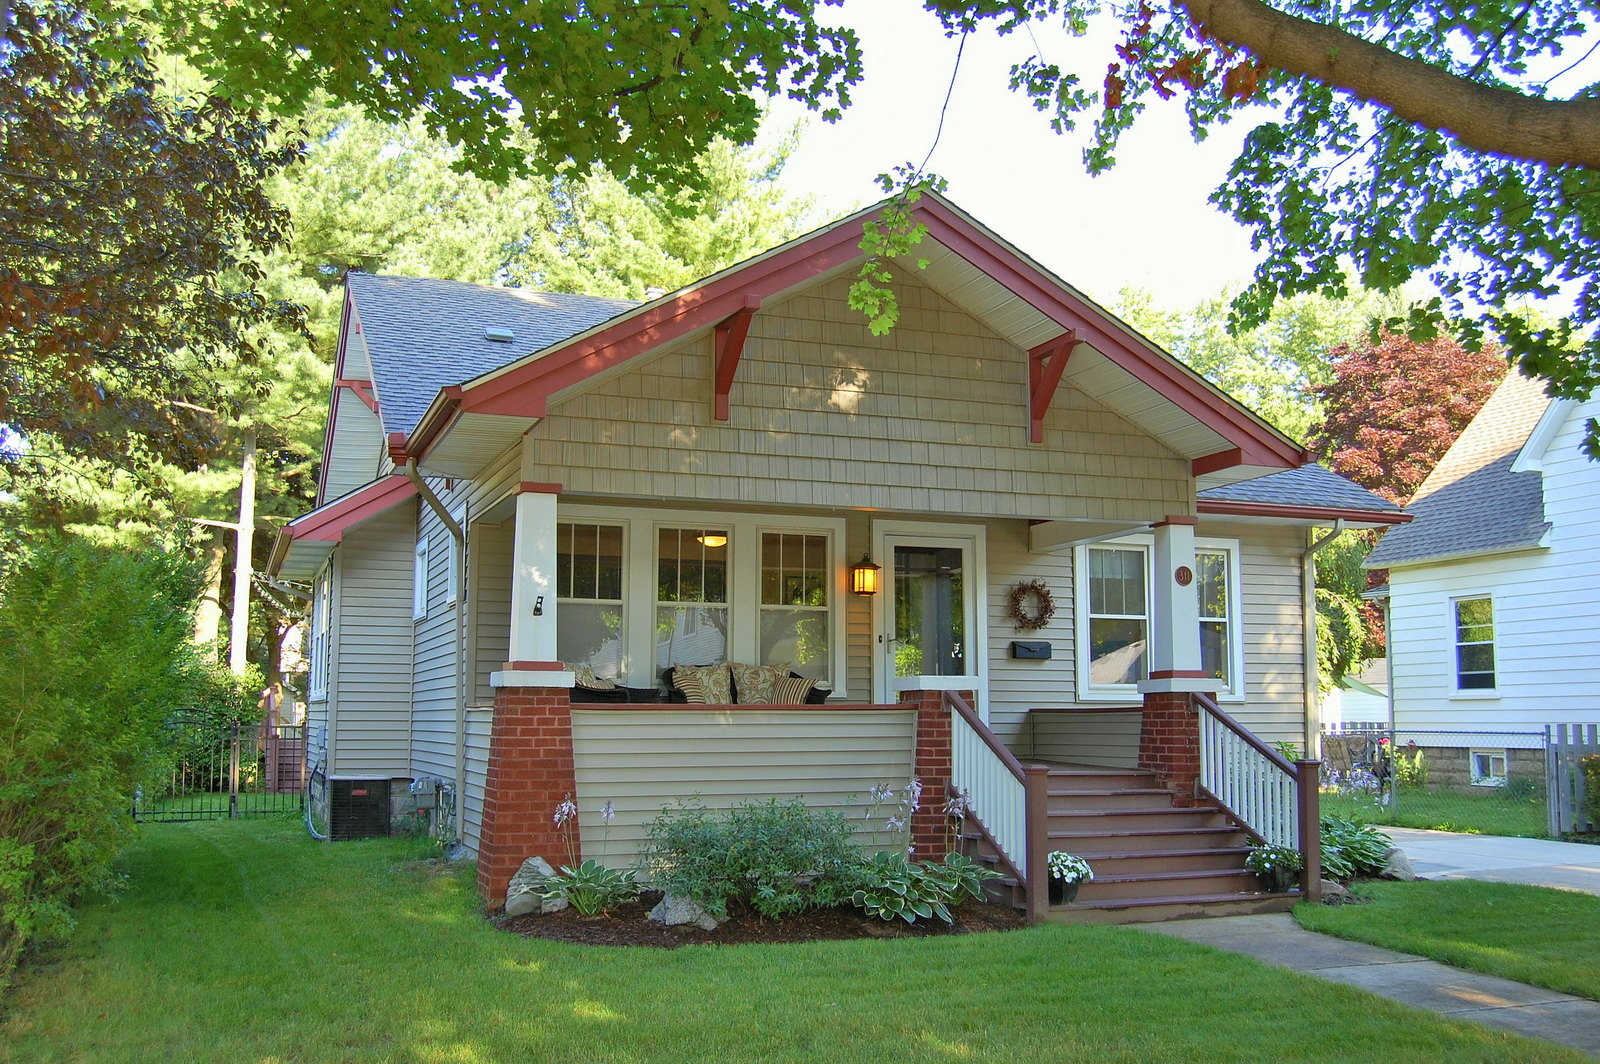 Craftsman Bungalow House Images